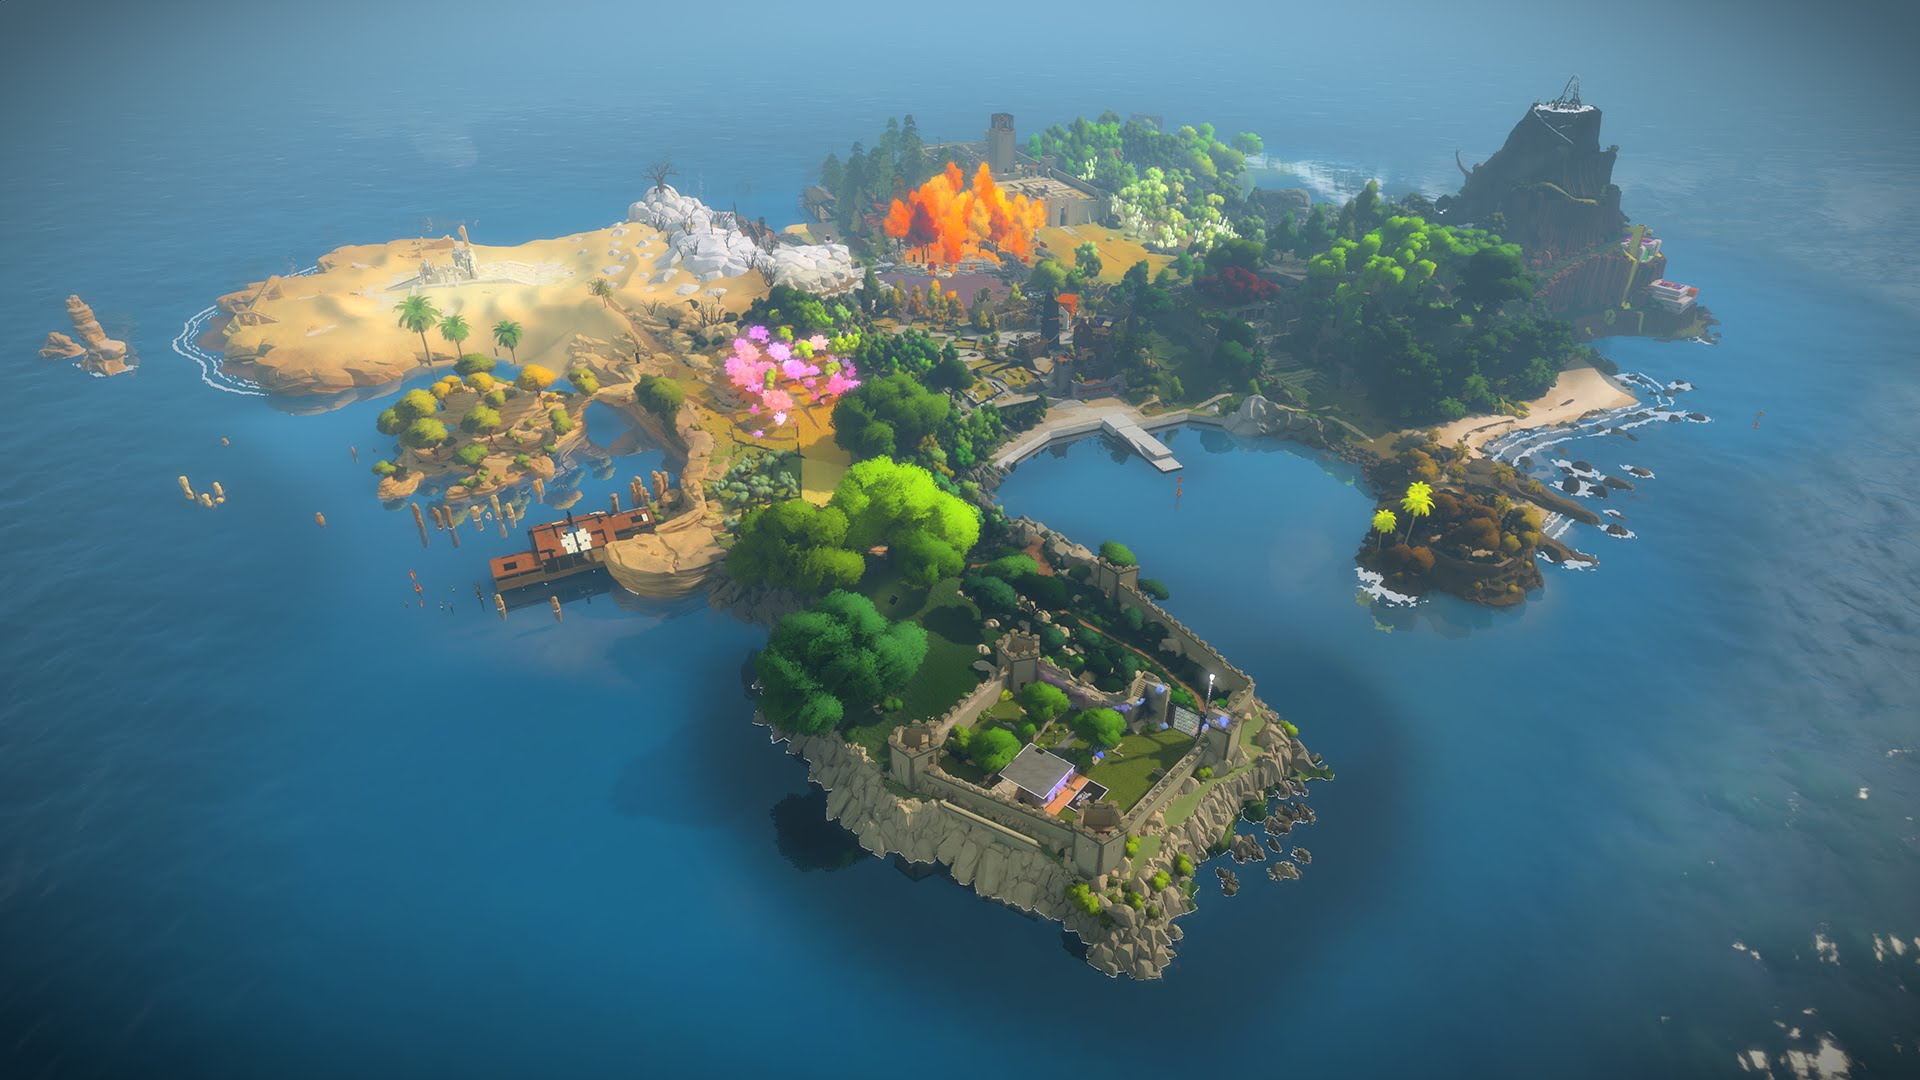 10. The Witness